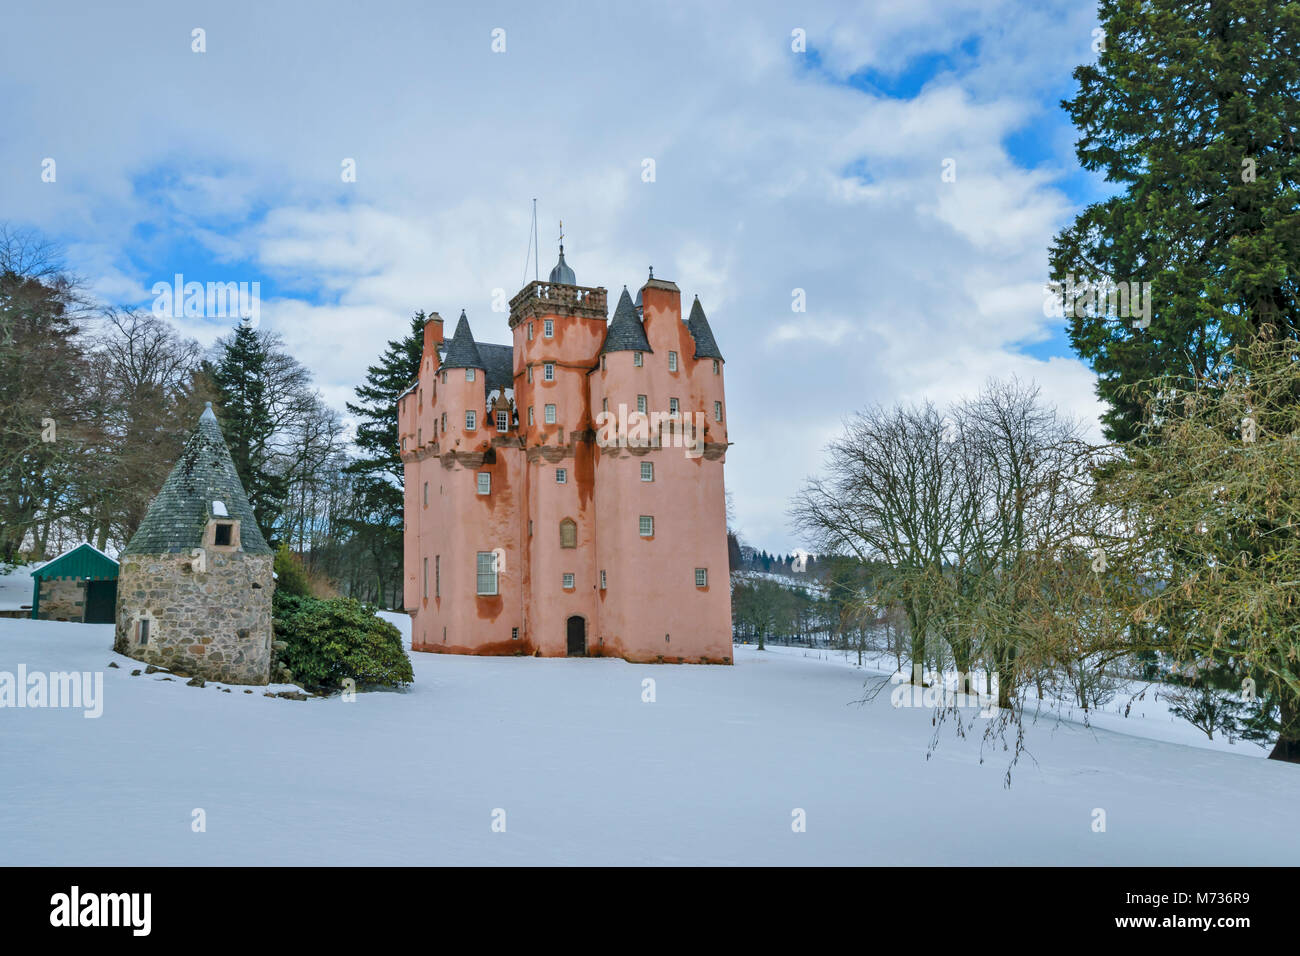 CRAIGIEVAR CASTLE ABERDEENSHIRE SCOTLAND WITH THE PINK TOWER SURROUNDED BY WINTER SNOW  AND EVERGREEN PINE TREES - Stock Image